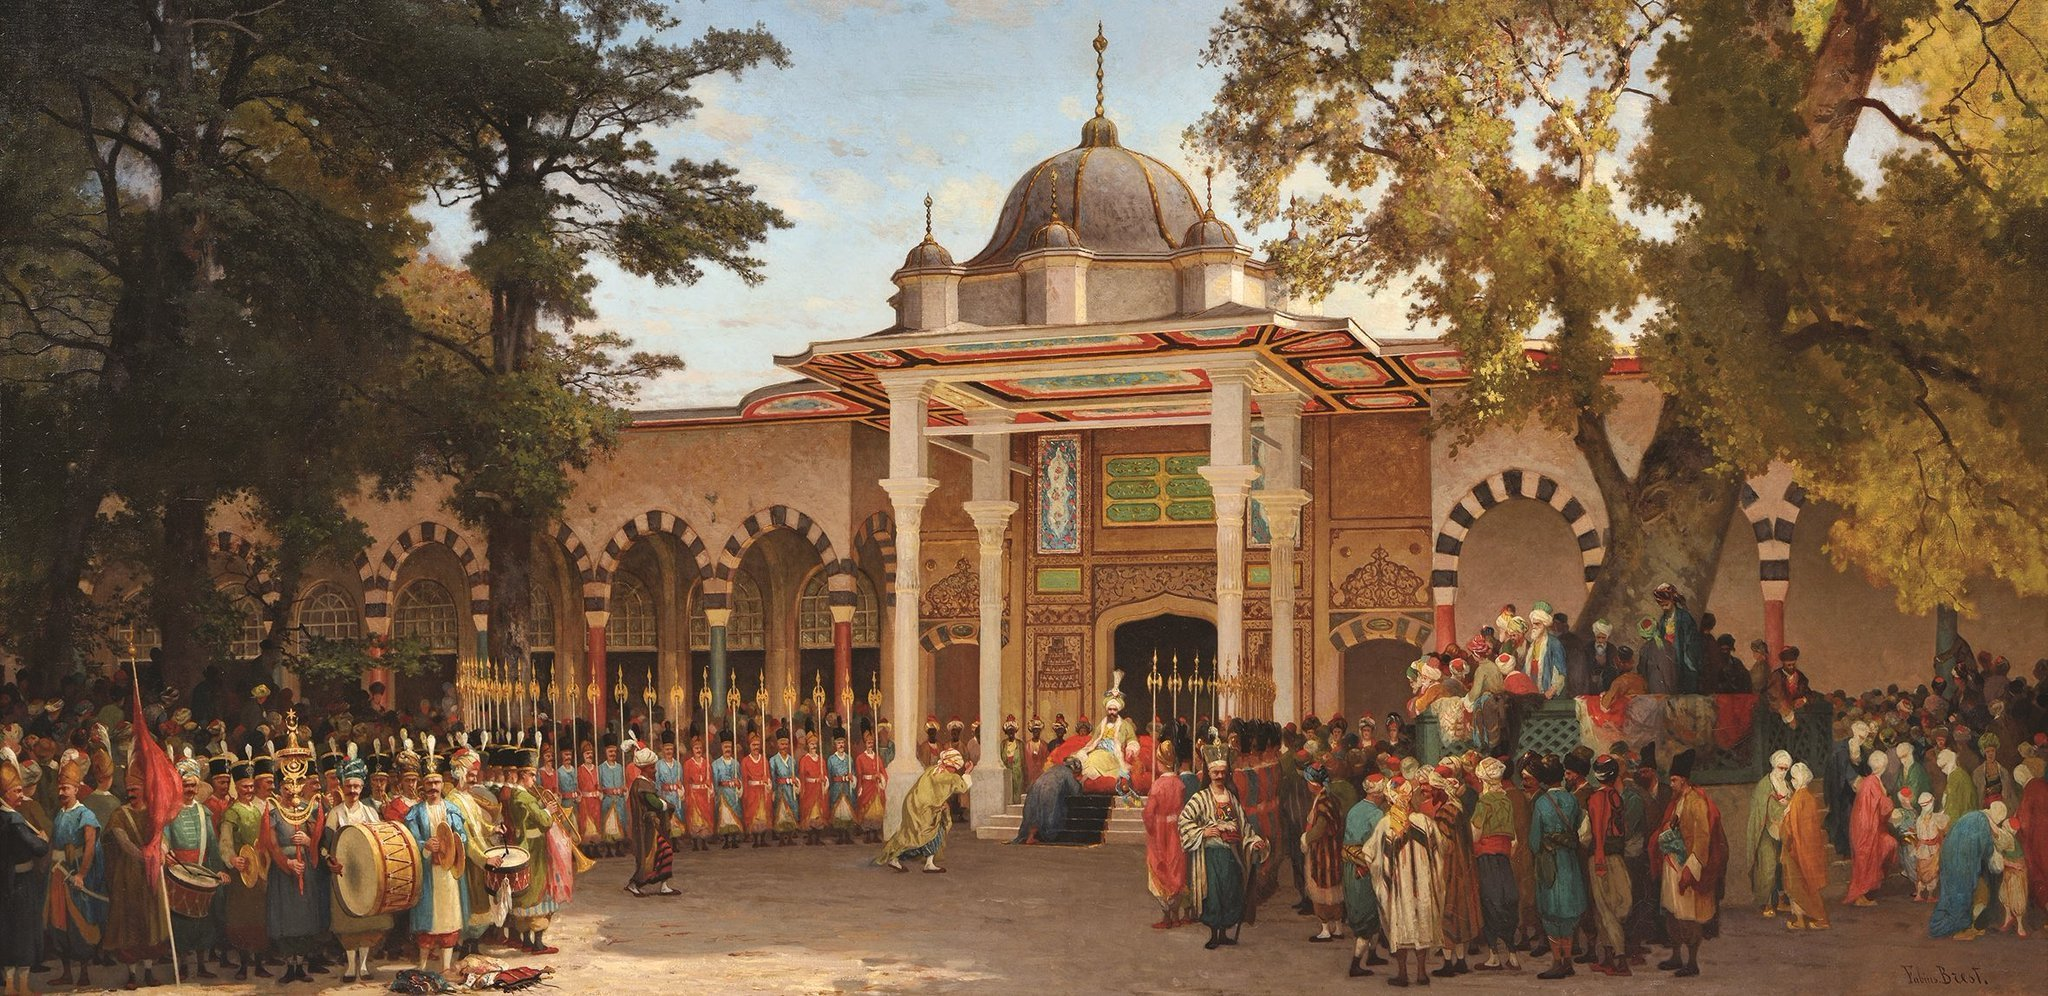 """Germain Fabius Brest depicts a reception held in front of the Gate of Felicity in the second courtyard of the Topkapı Palace in his 1865-dated """"Bayram Greetings Reception.'"""